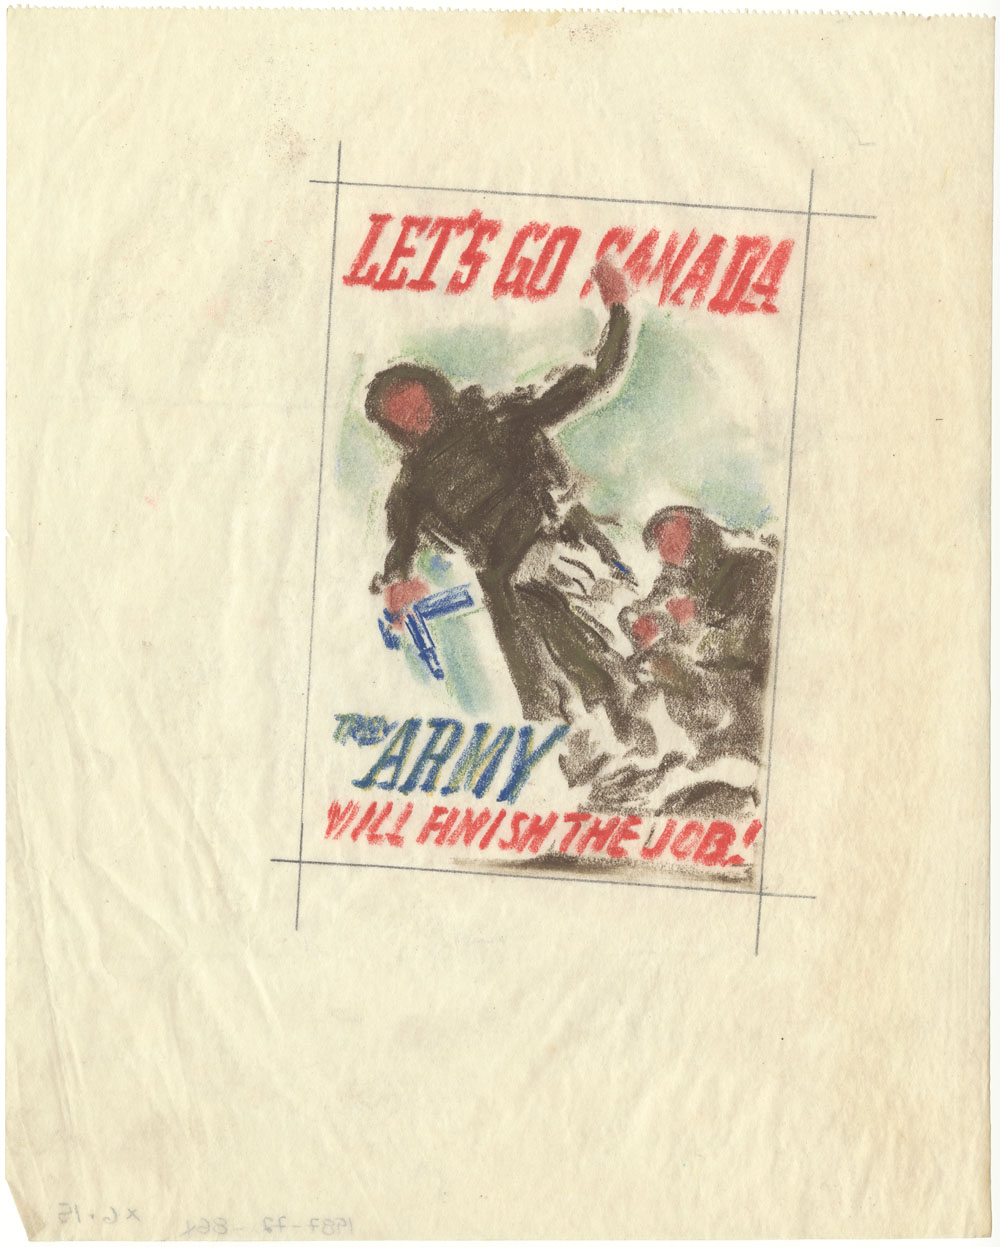 Study for Poster &#34;Let's Go Canada, the Army Will Finish the Job&#34;. (item 1)